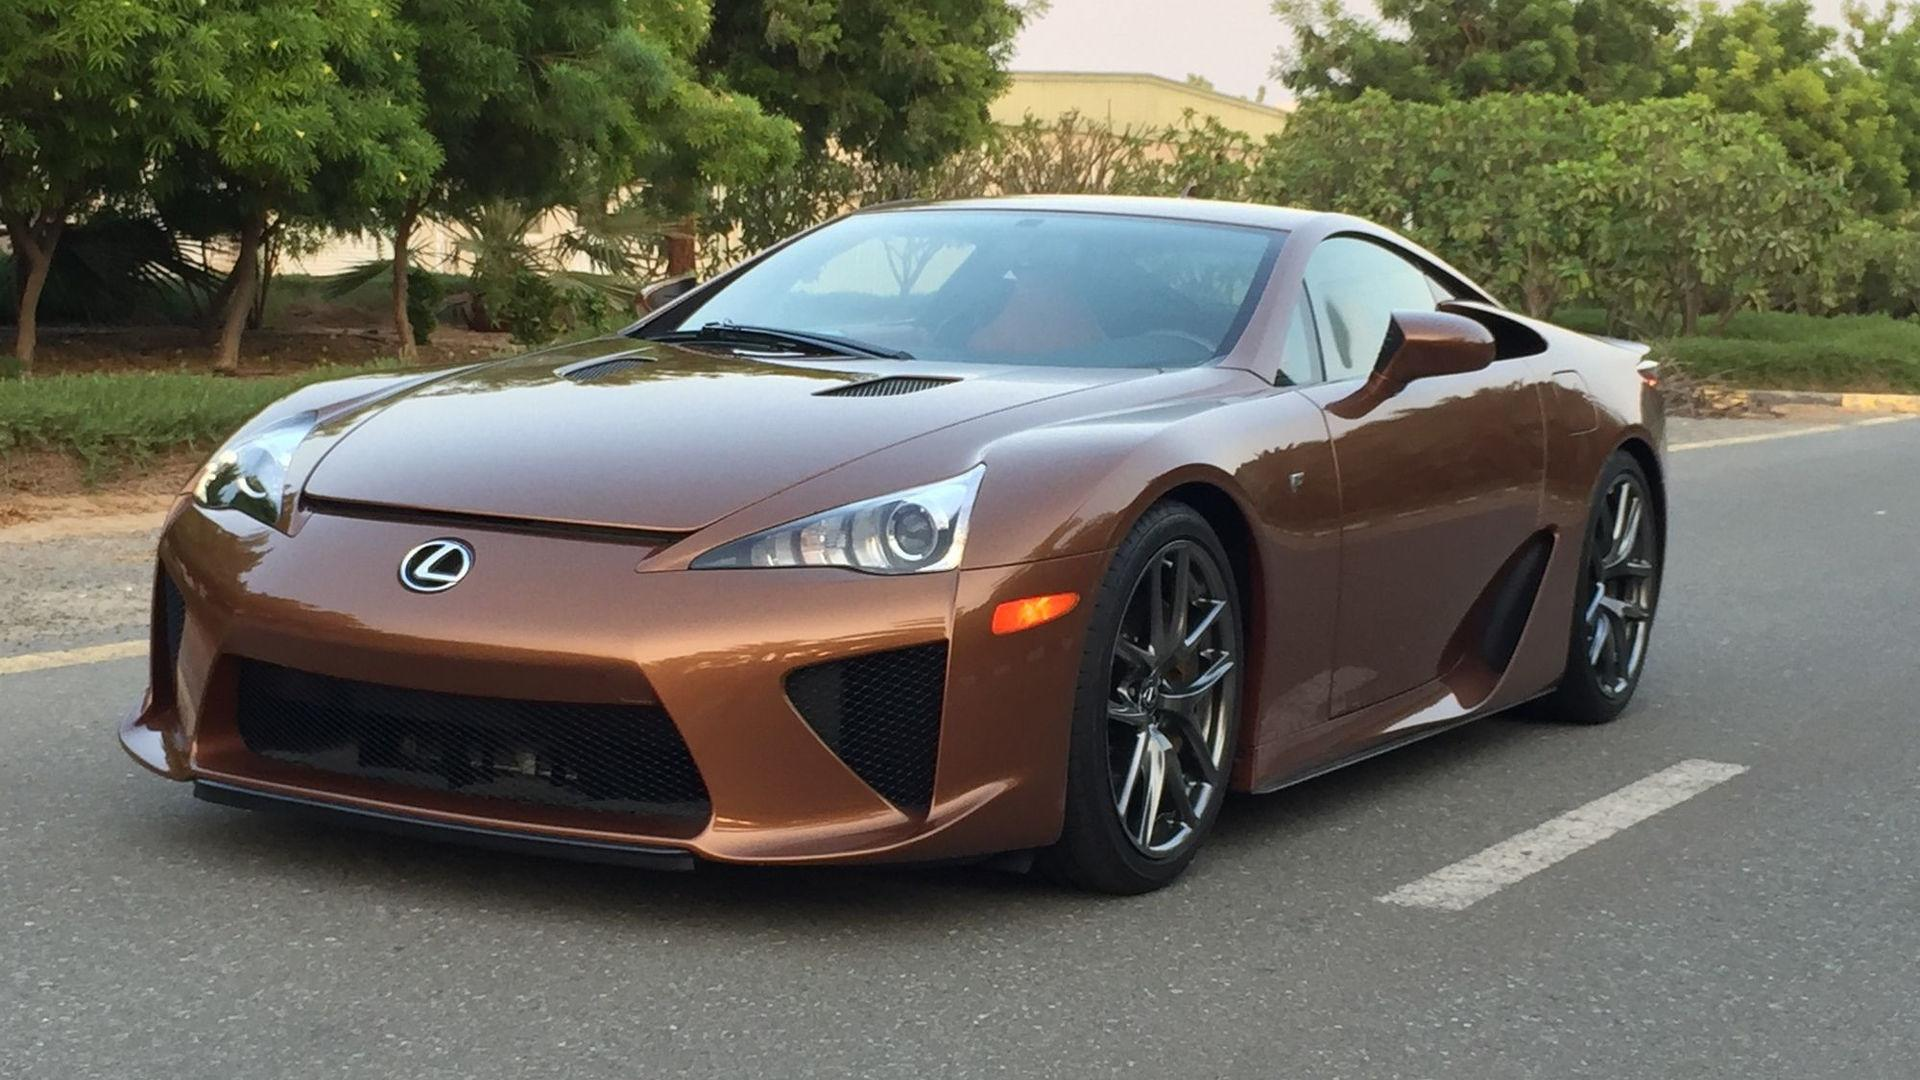 new lexus lfa considered, but other projects take priority